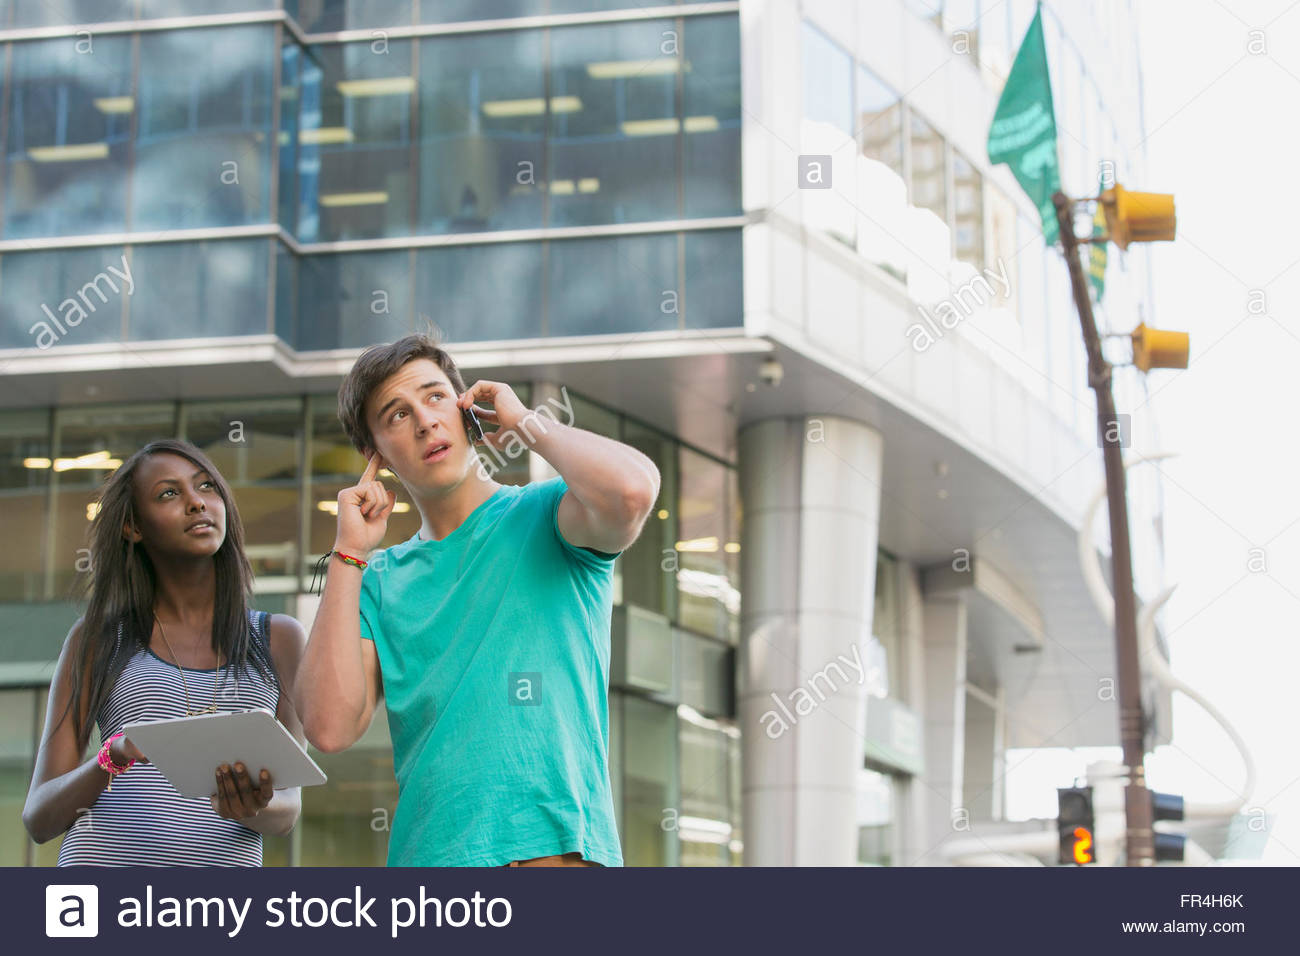 teenagers using technology to find their way - Stock Image